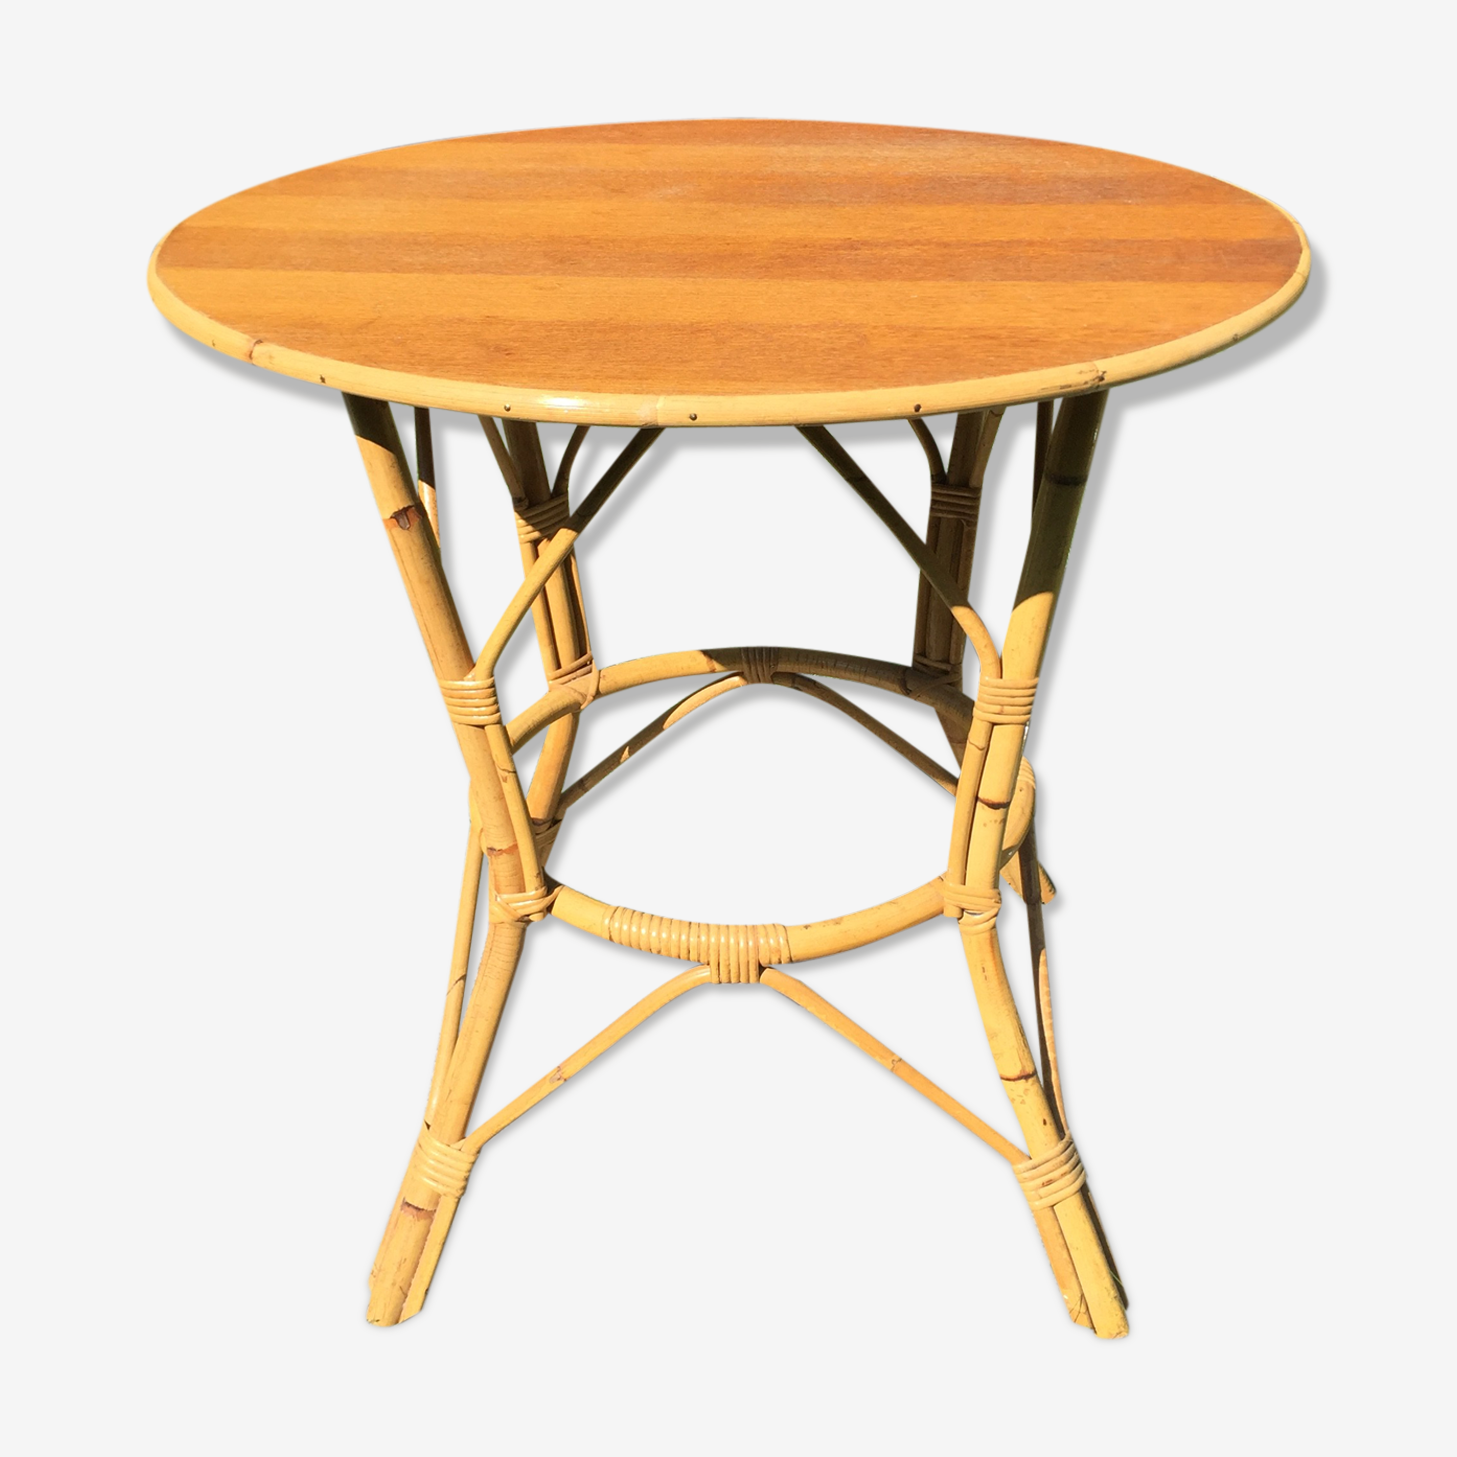 Bamboo and rattan 1960 vintage table